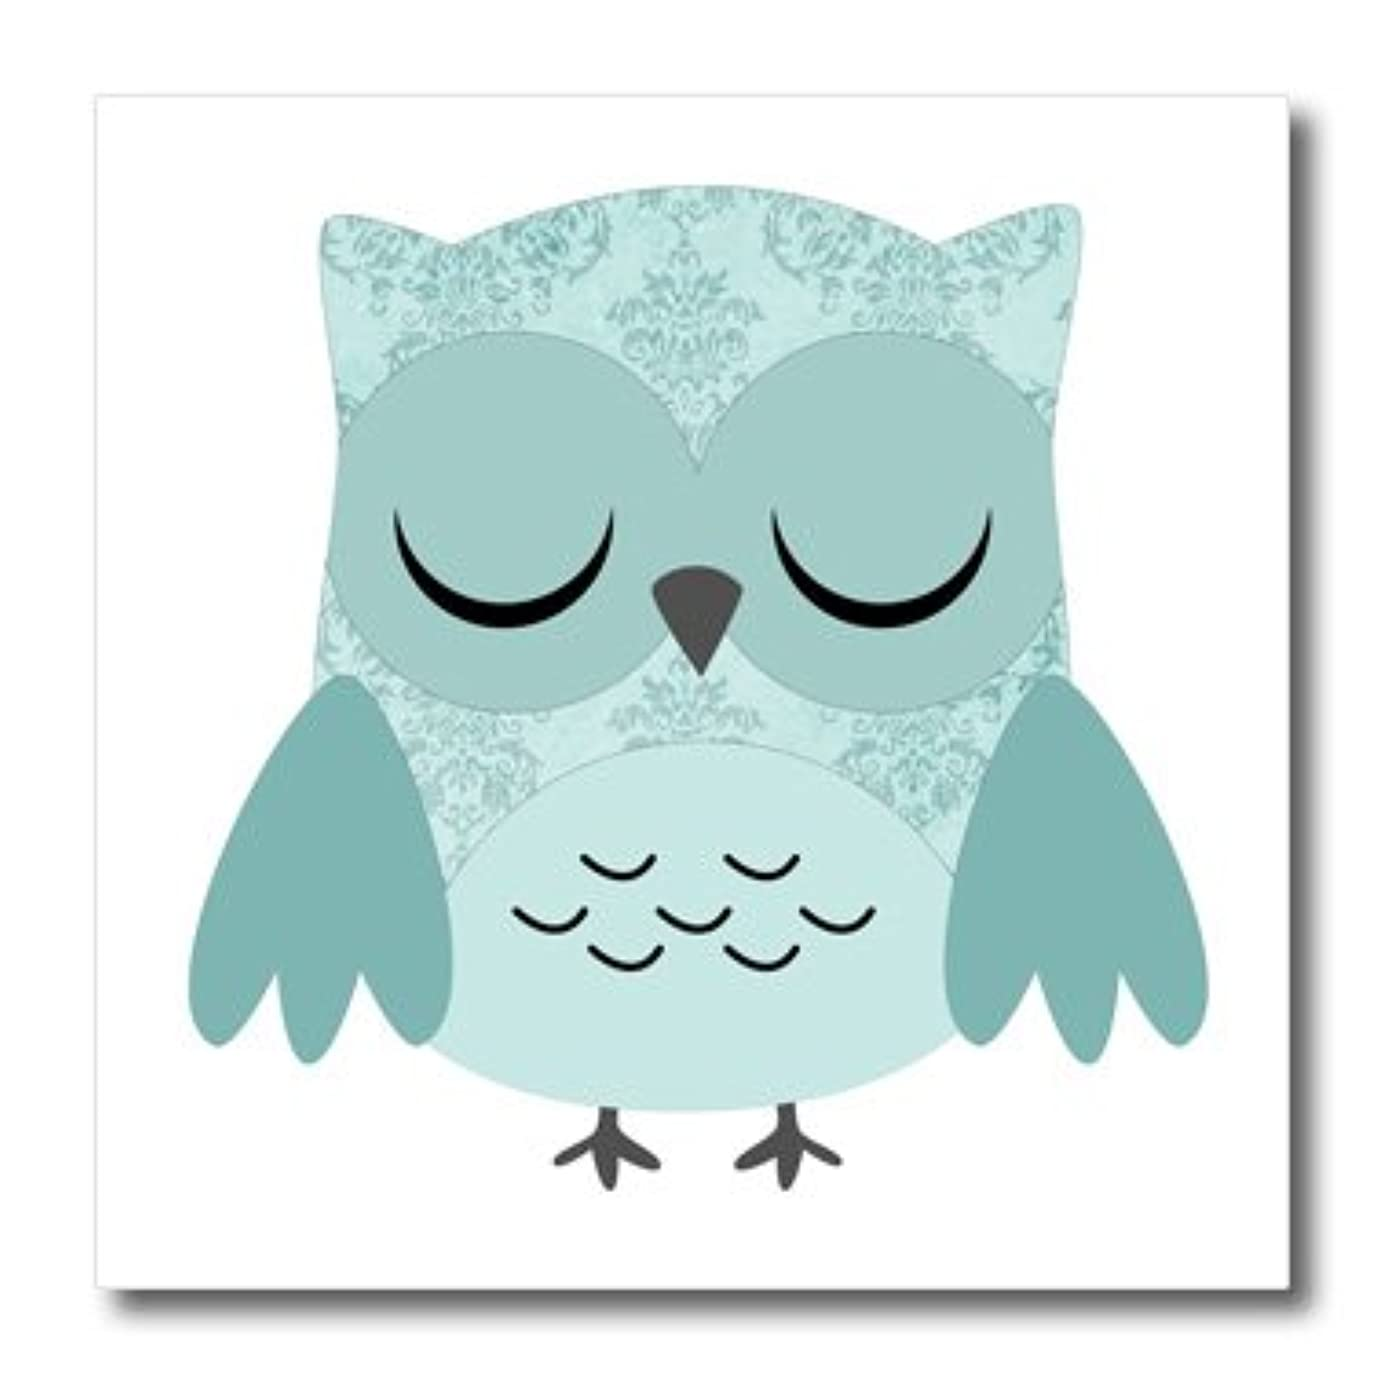 3dRose ht_61000_3 Cute Blue Damask Owl Iron on Heat Transfer Paper for White Material, 10 by 10-Inch